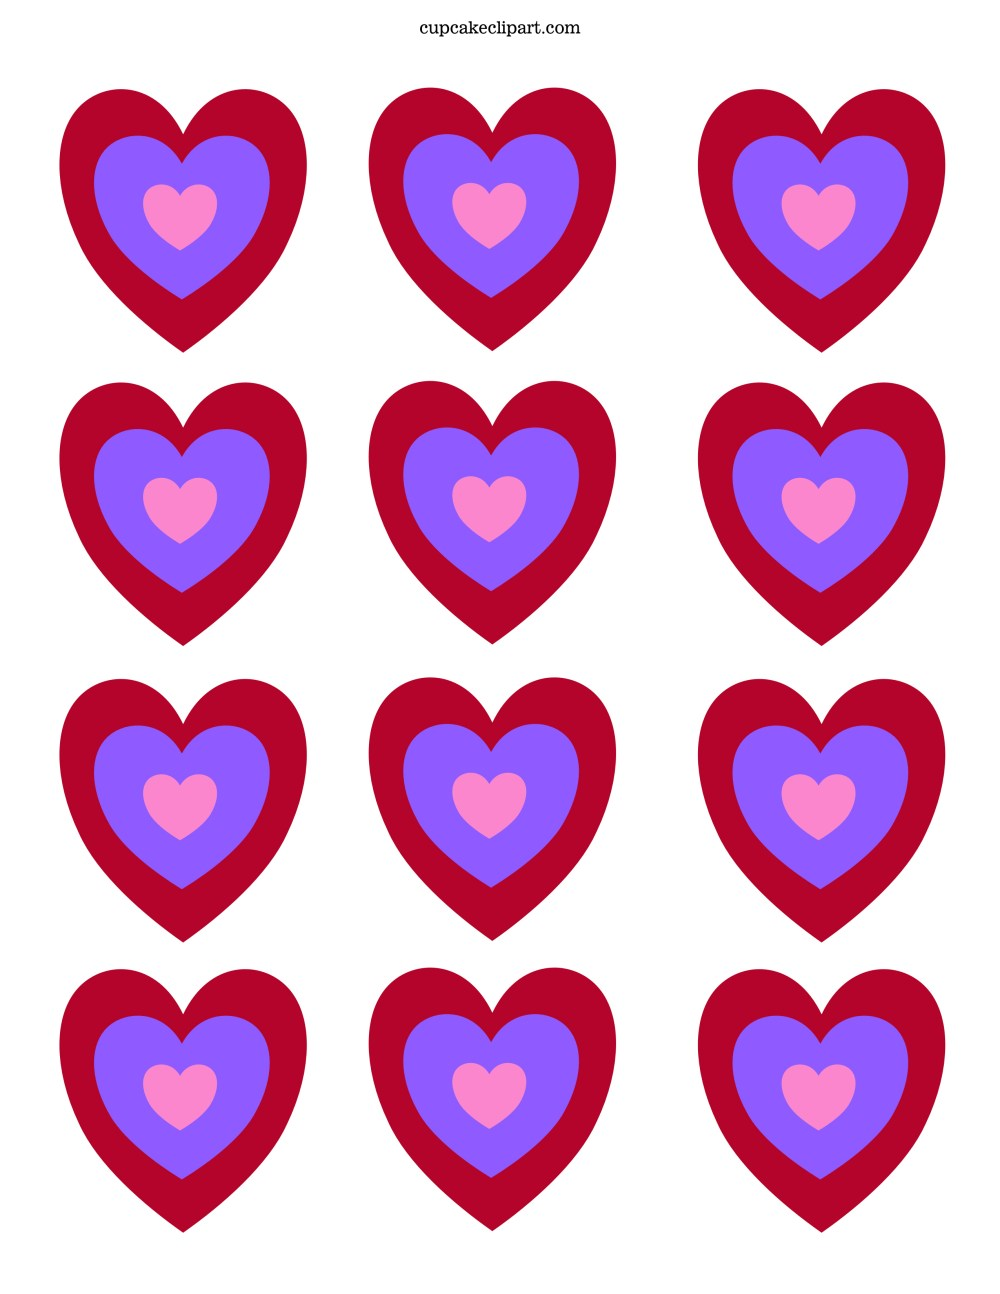 medium resolution of 2550x3300 valentine s day printable cupcake topper cupcake clipart